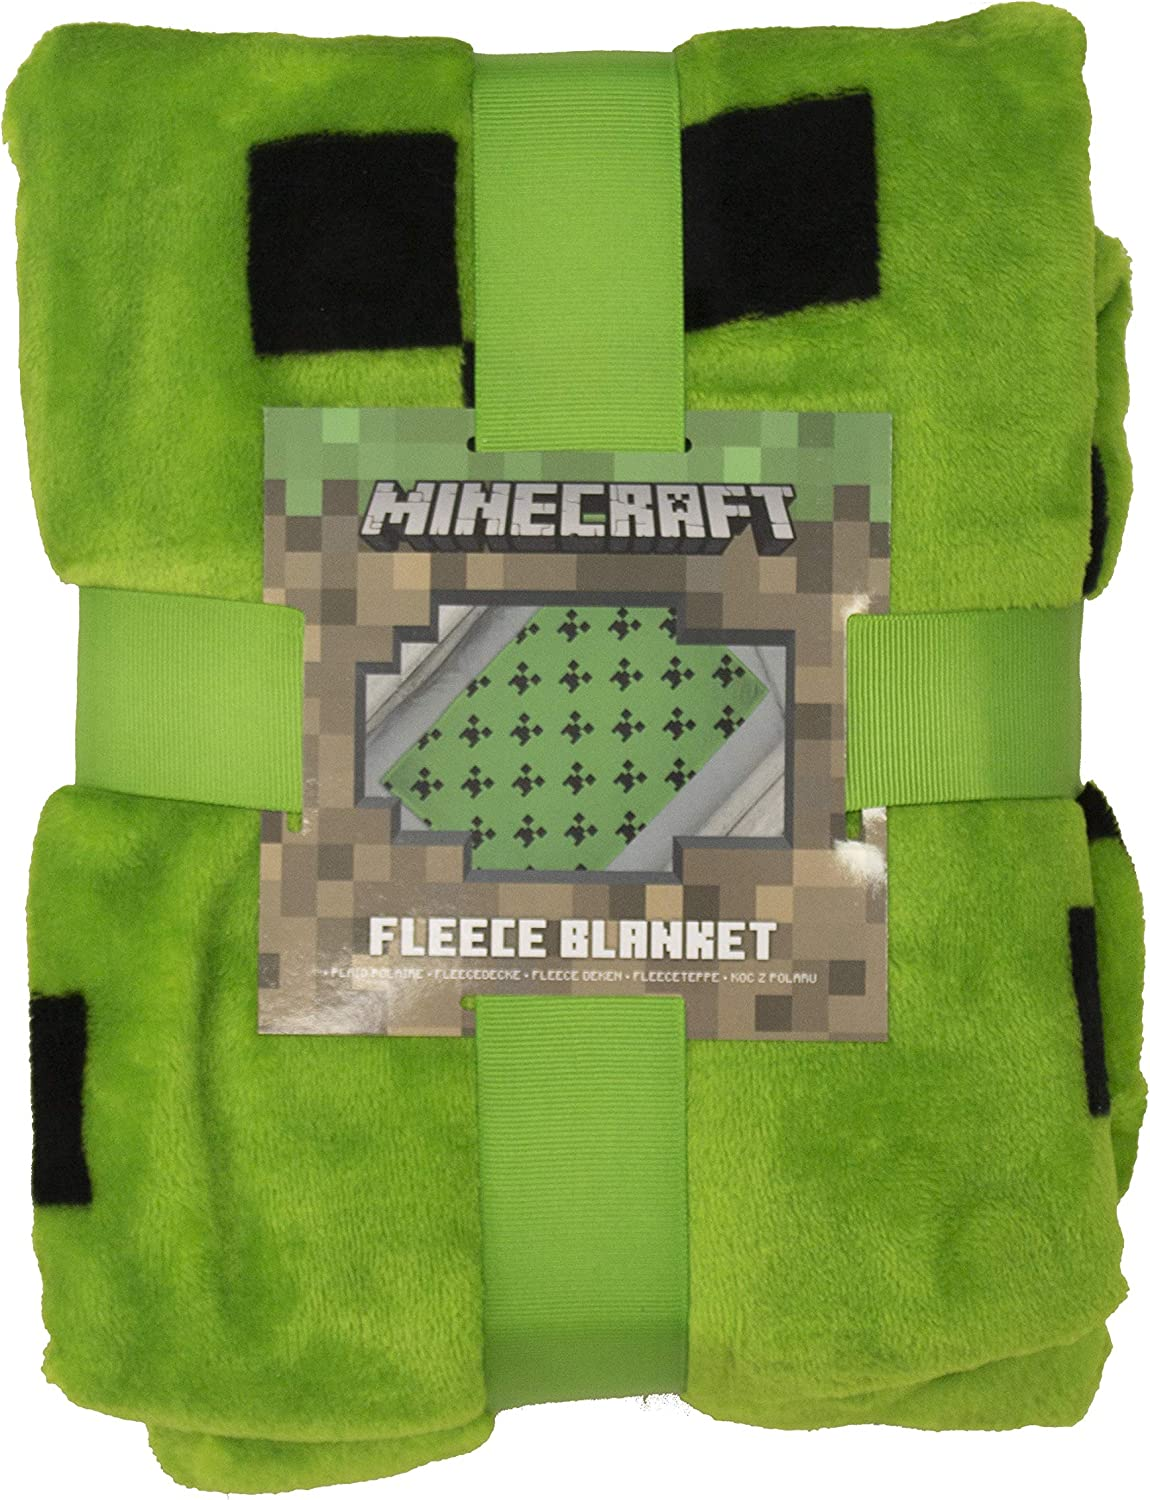 Minecraft Official Emerlald Fleece Throw  Green Creeper Design Super Soft  Blanket  Perfect for Any Bedroom